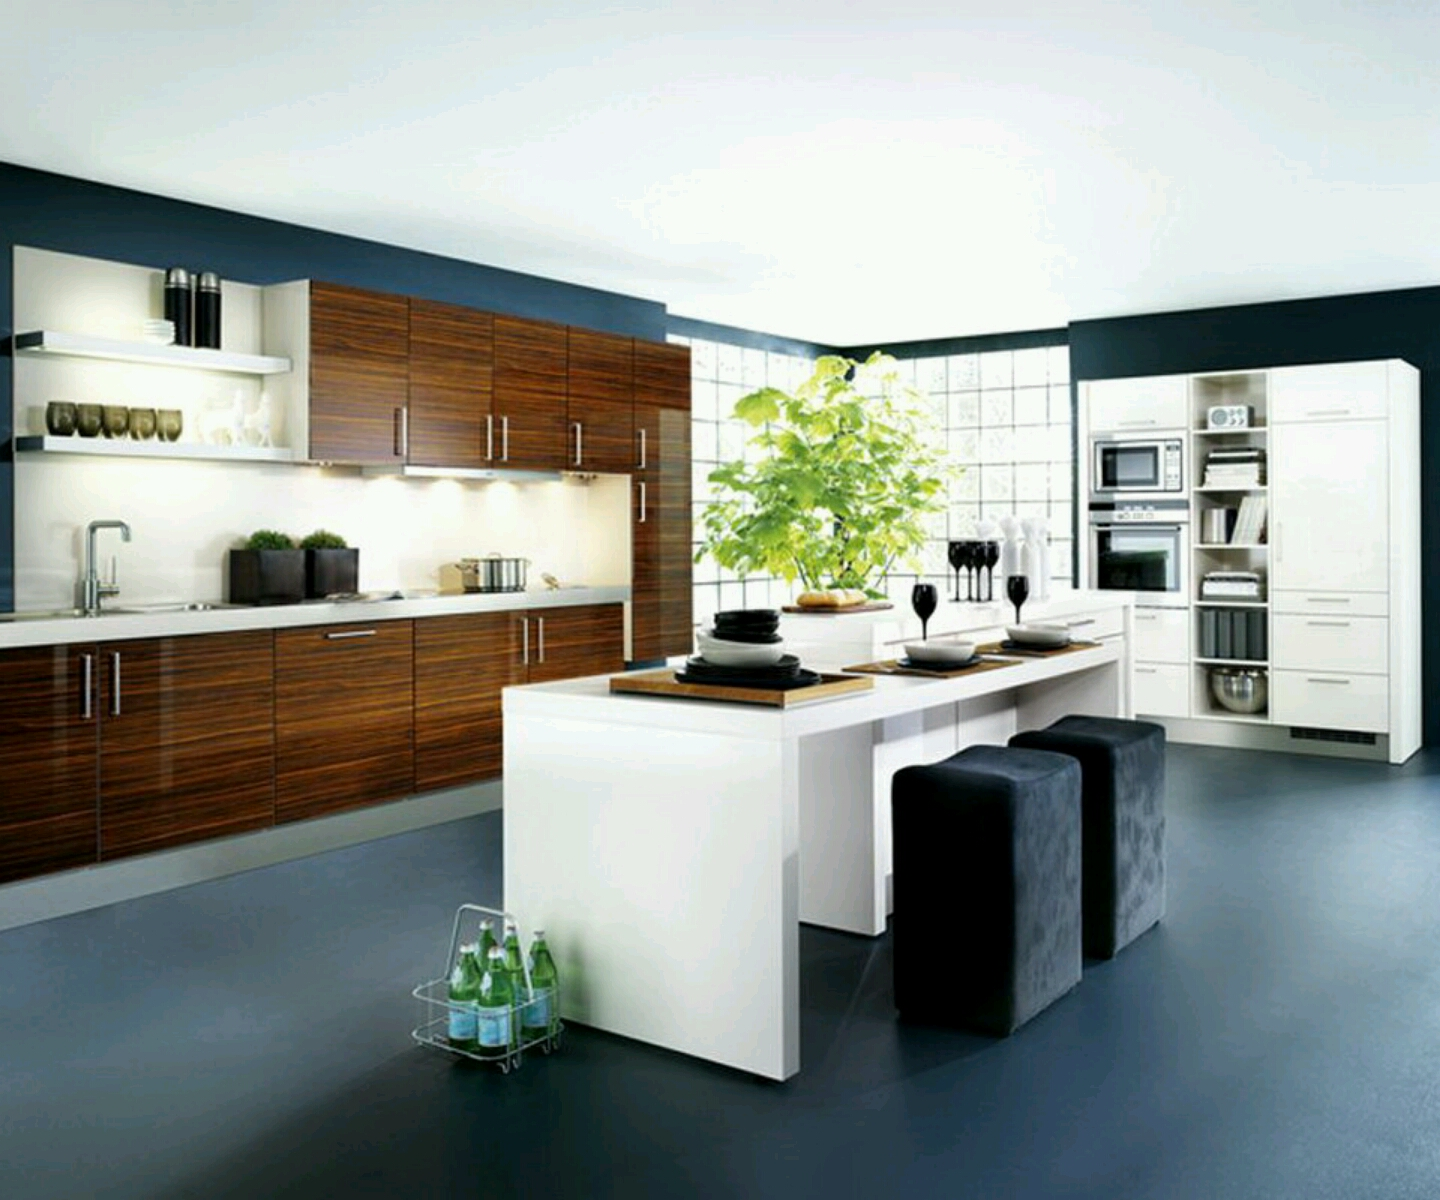 new home designs latest kitchen cabinets designs modern On new kitchen designs images